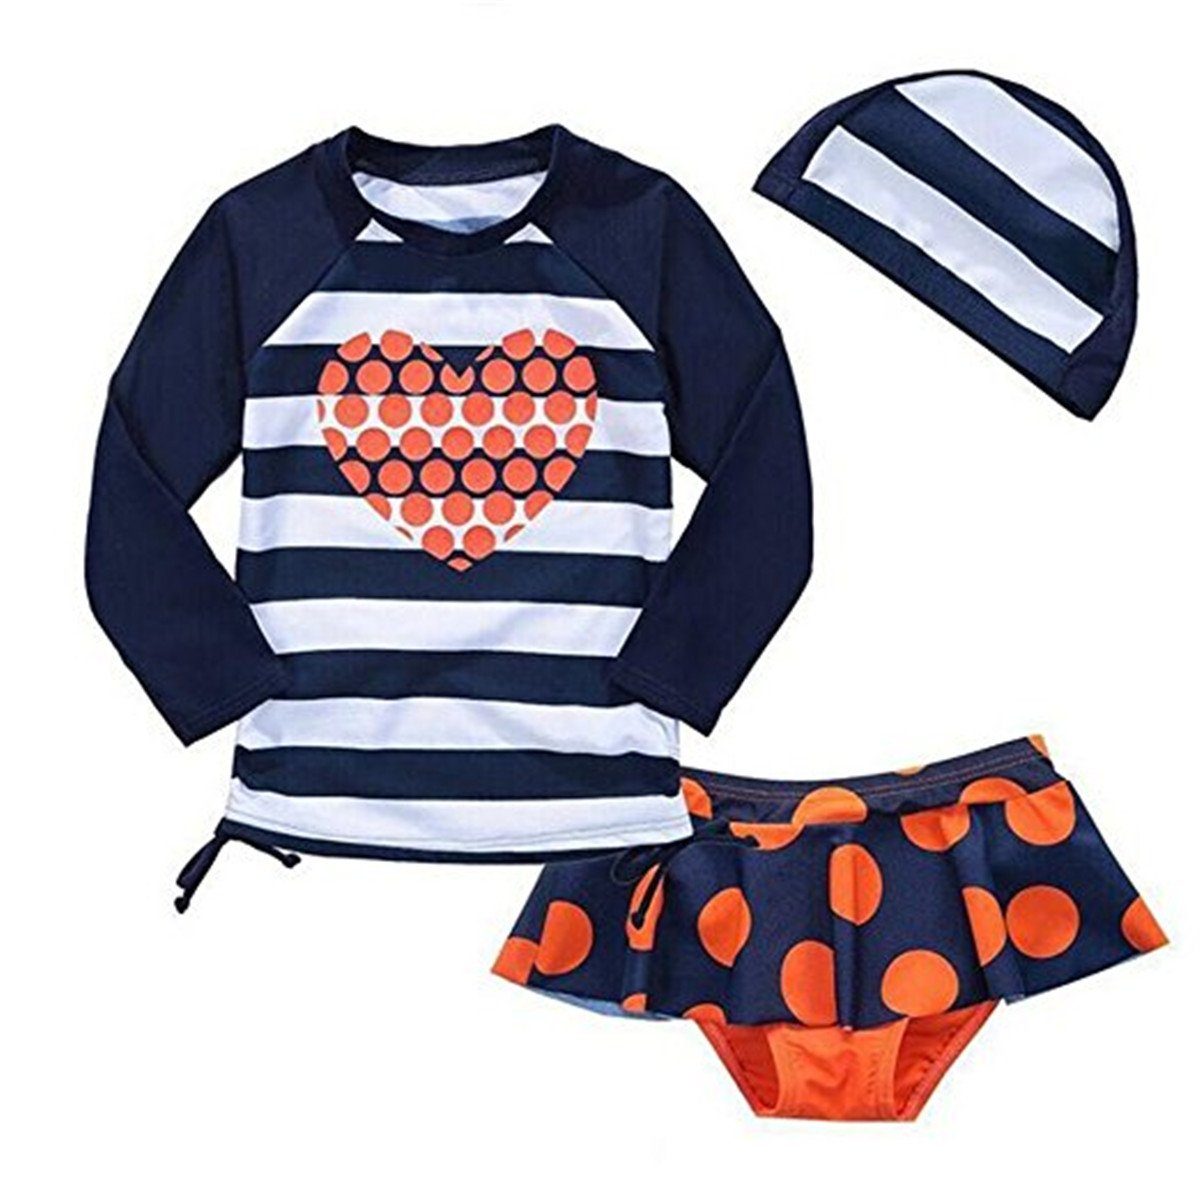 Baby Girls Kids Toddler 2 Pcs Long Sleeve Swimsuit With Caps Rash Guard UPF 50+ UV liantiy063